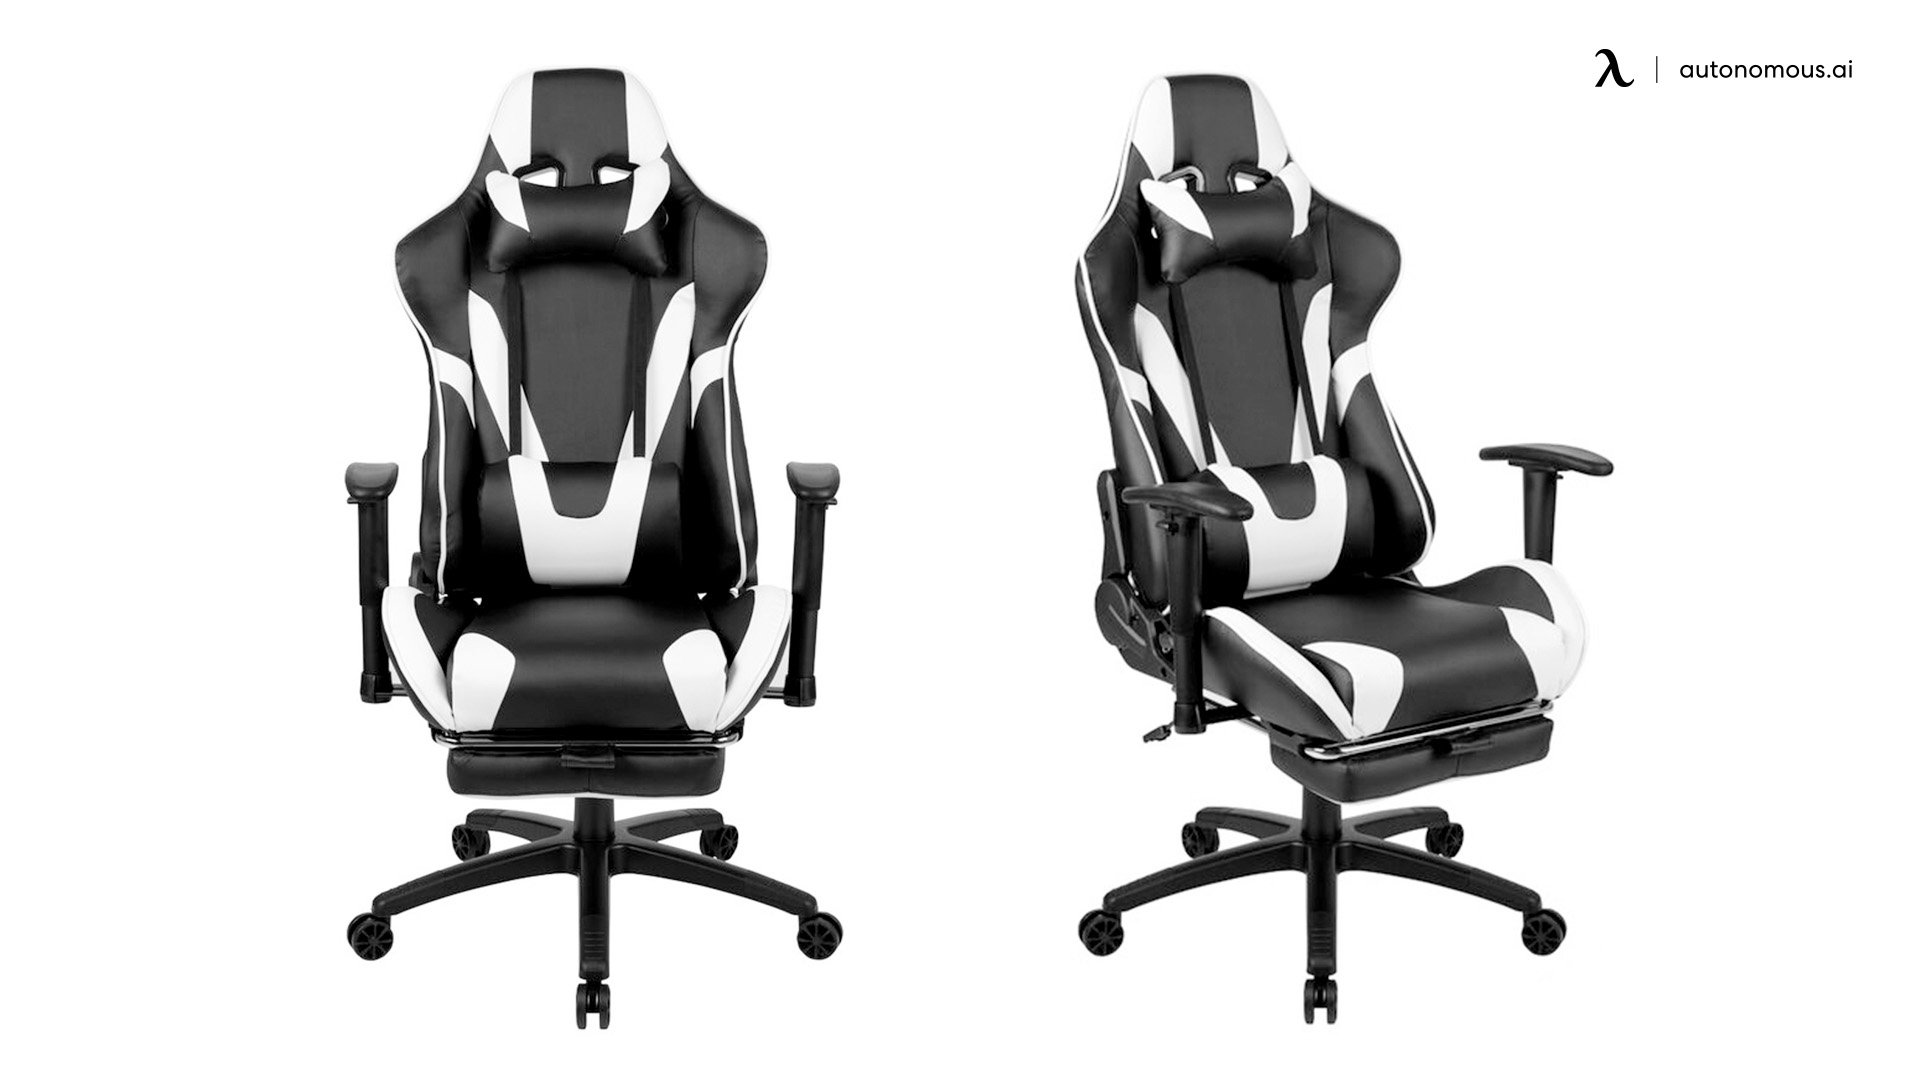 The PC & Racing Game Chair by Inbox Zero